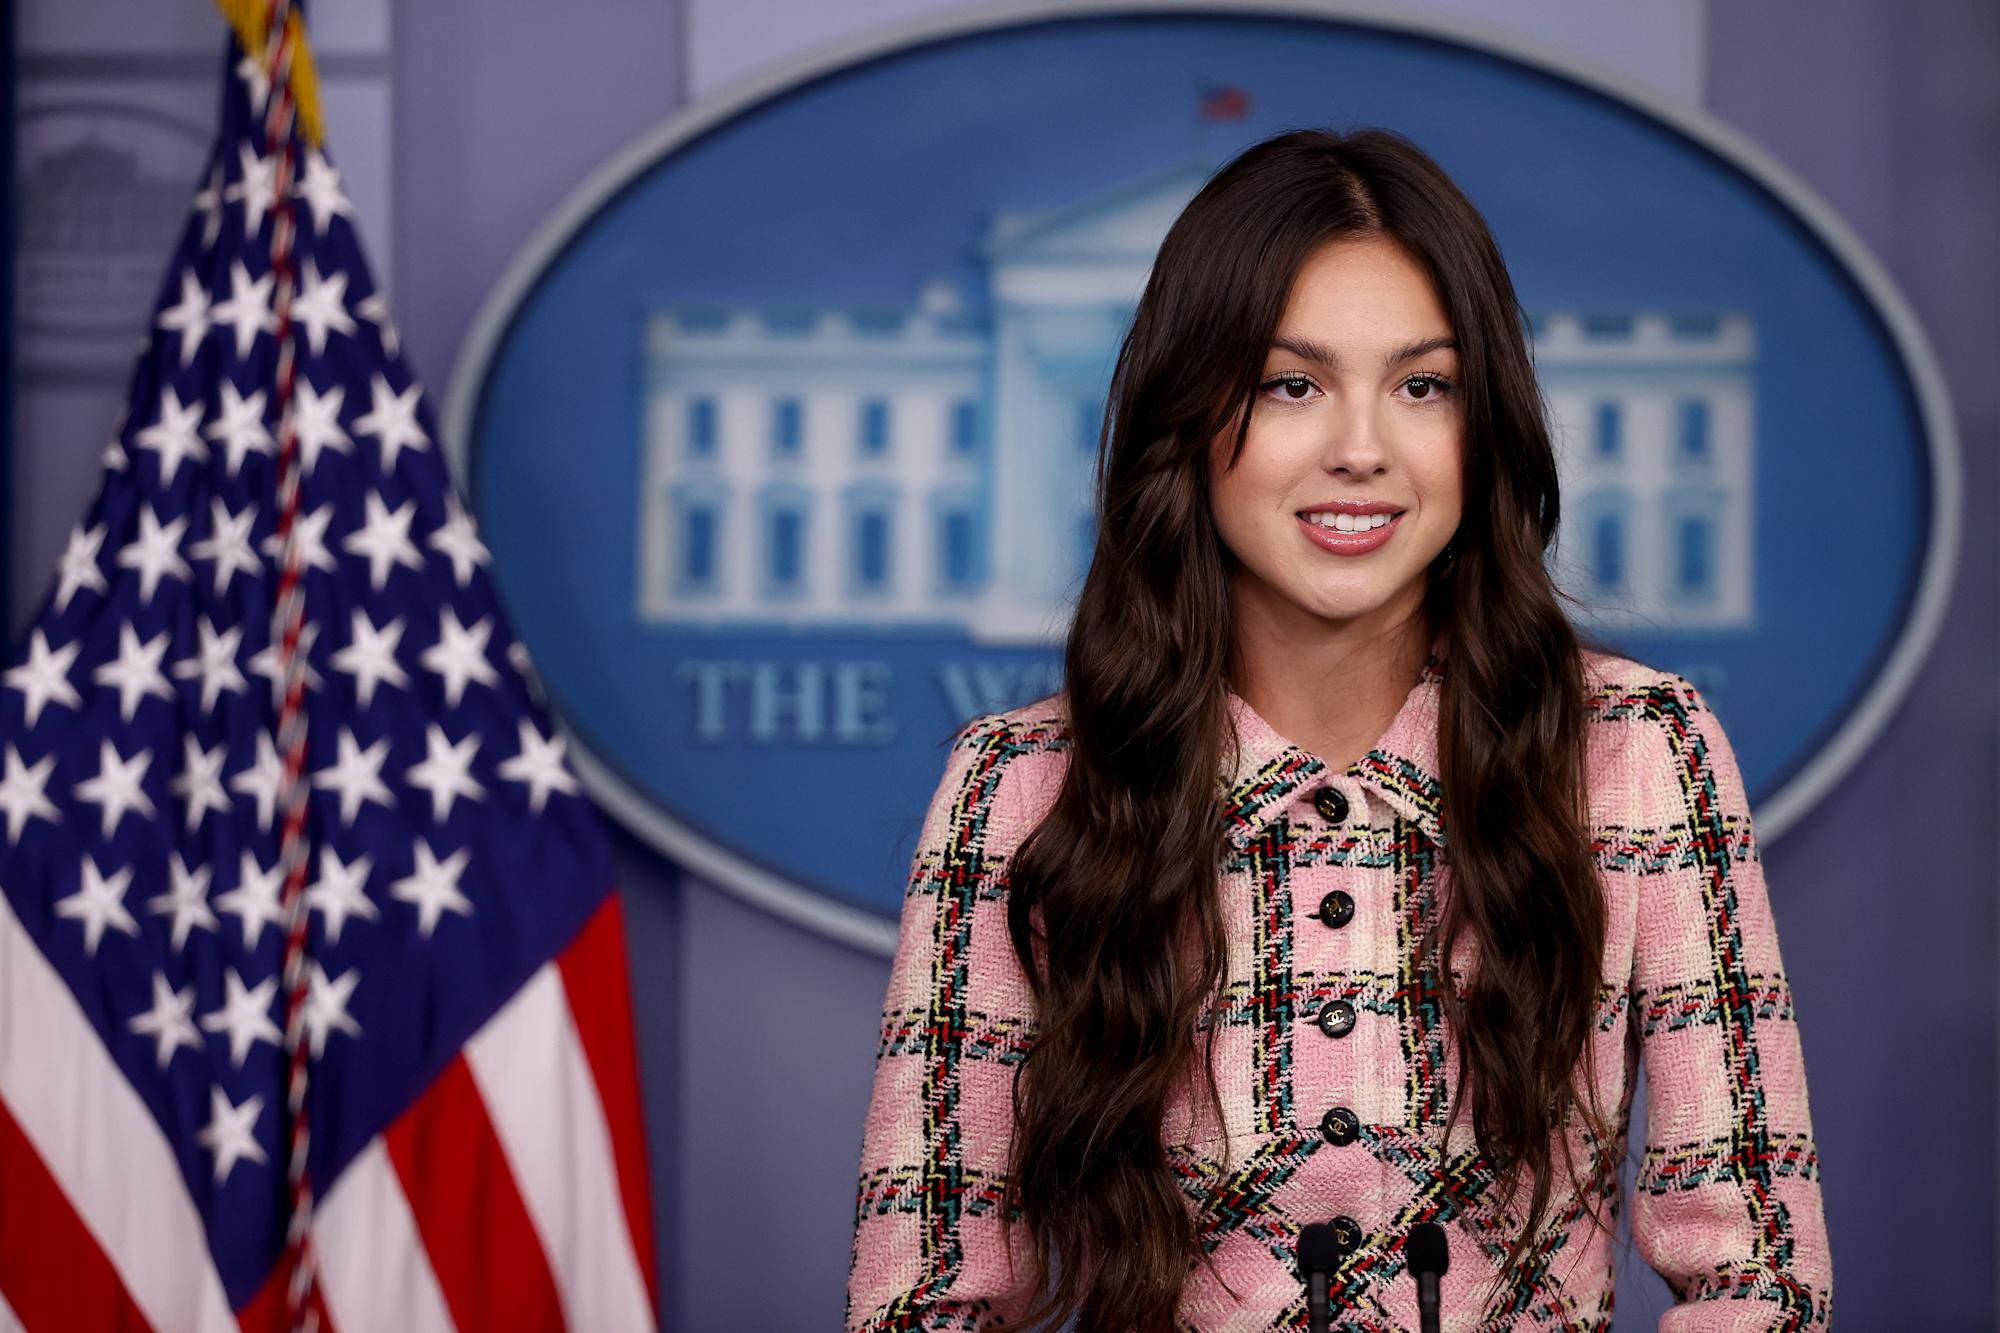 Olivia Rodrigo visits the White House to convince young people to get vaccinated. Here's why that's so important.